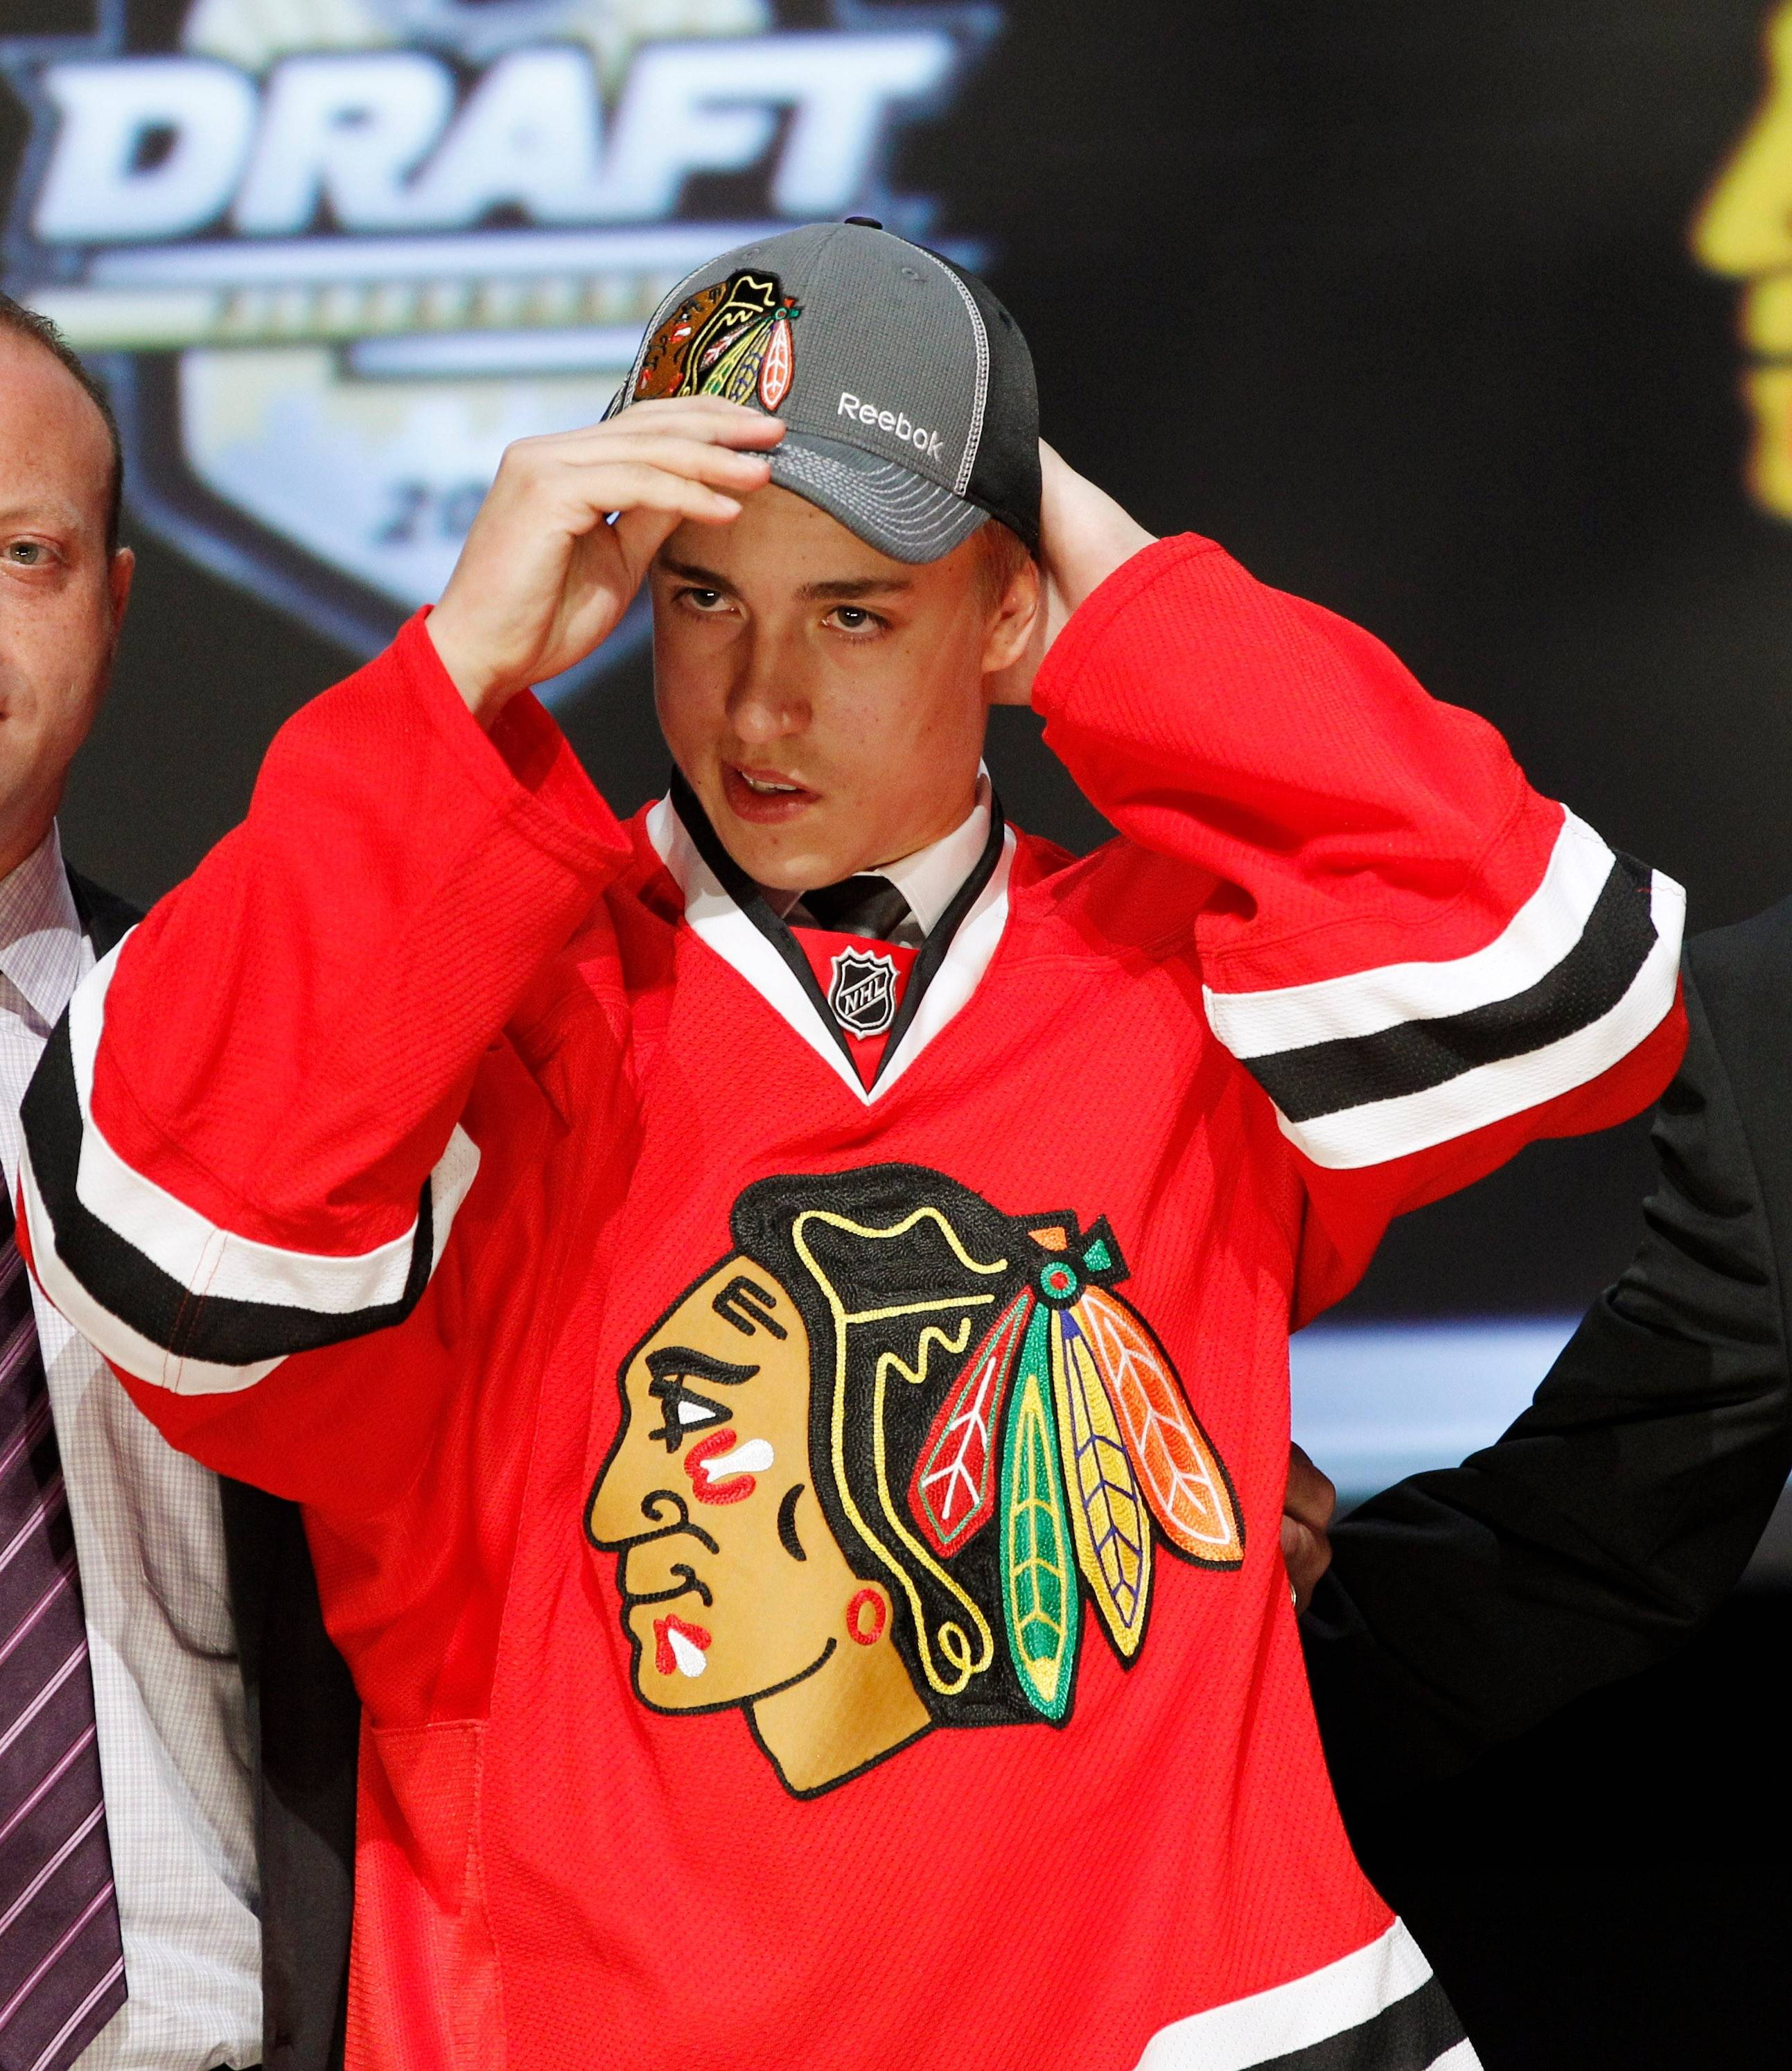 Teuvo Teravainen of Finland puts on a Blackhawks cap and jersey after being selected as the team's first-round draft pick in June.